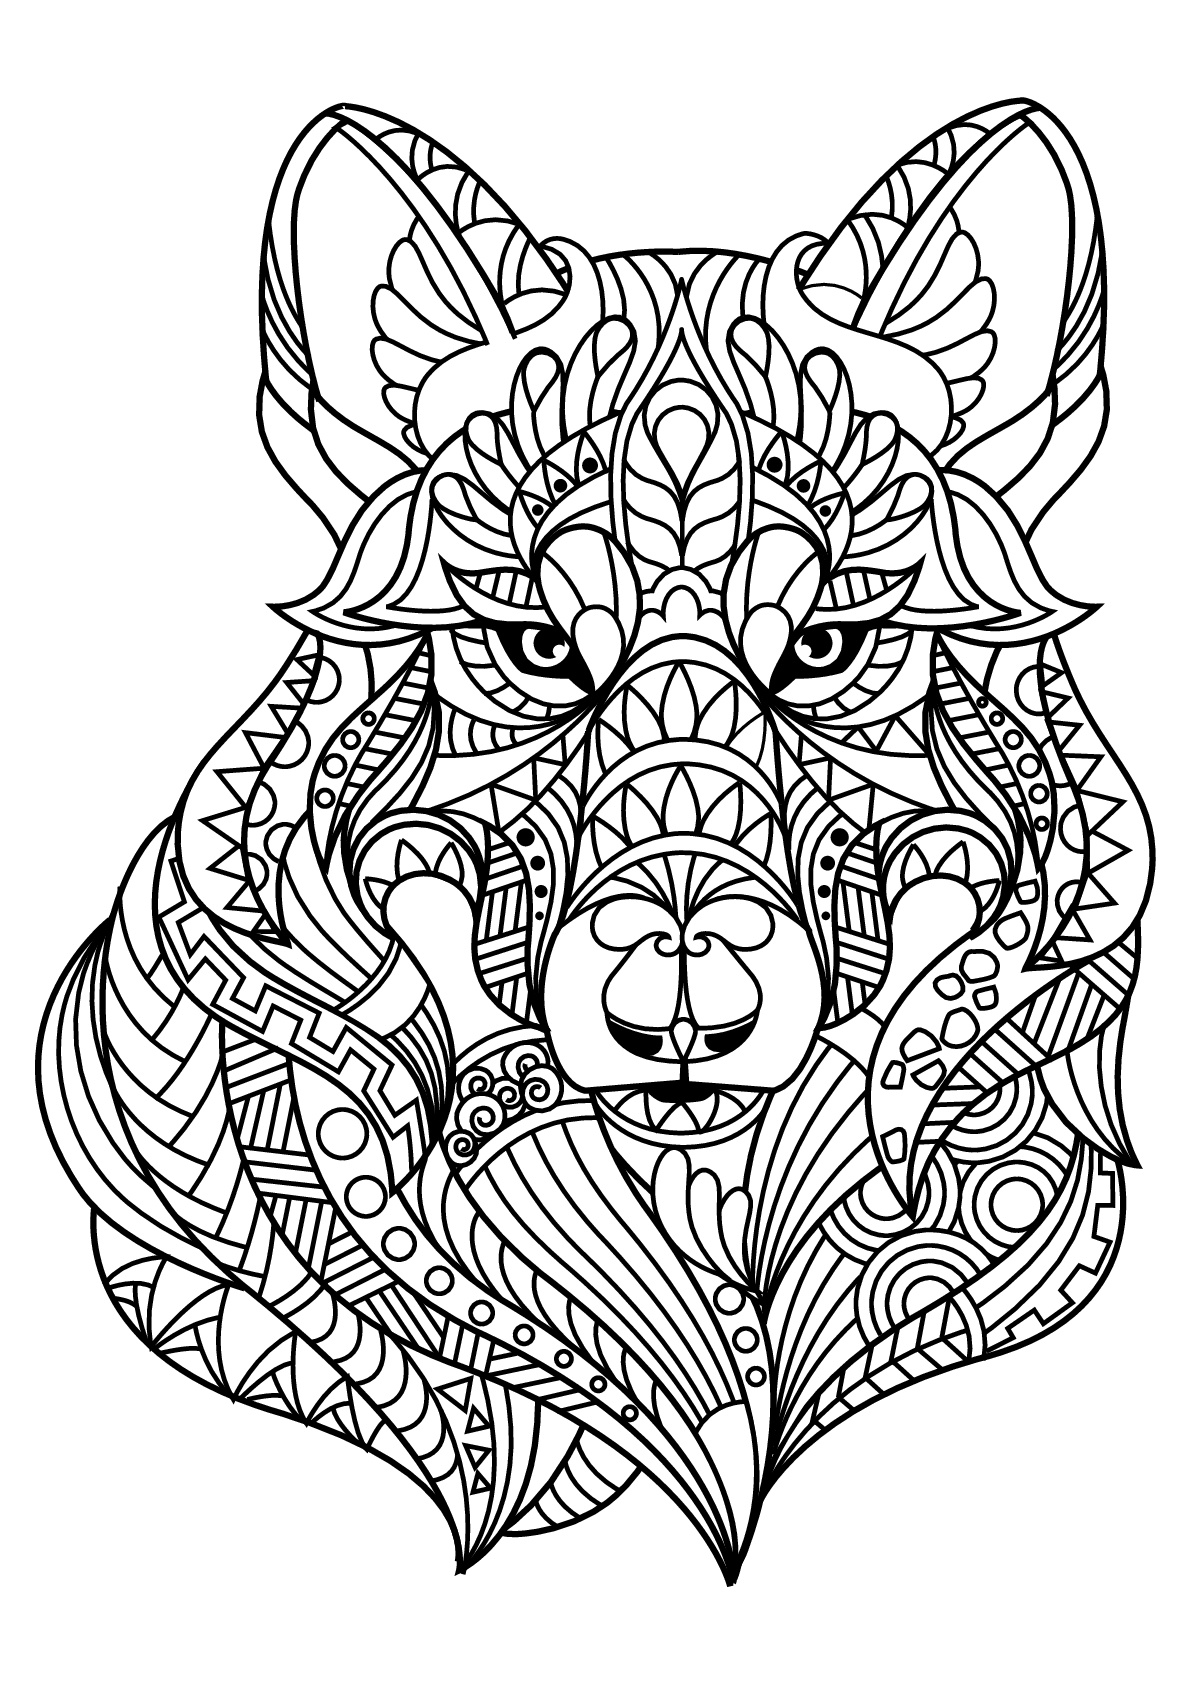 wolf coloring images nice female wolf coloring pages farkas minták wolf images coloring